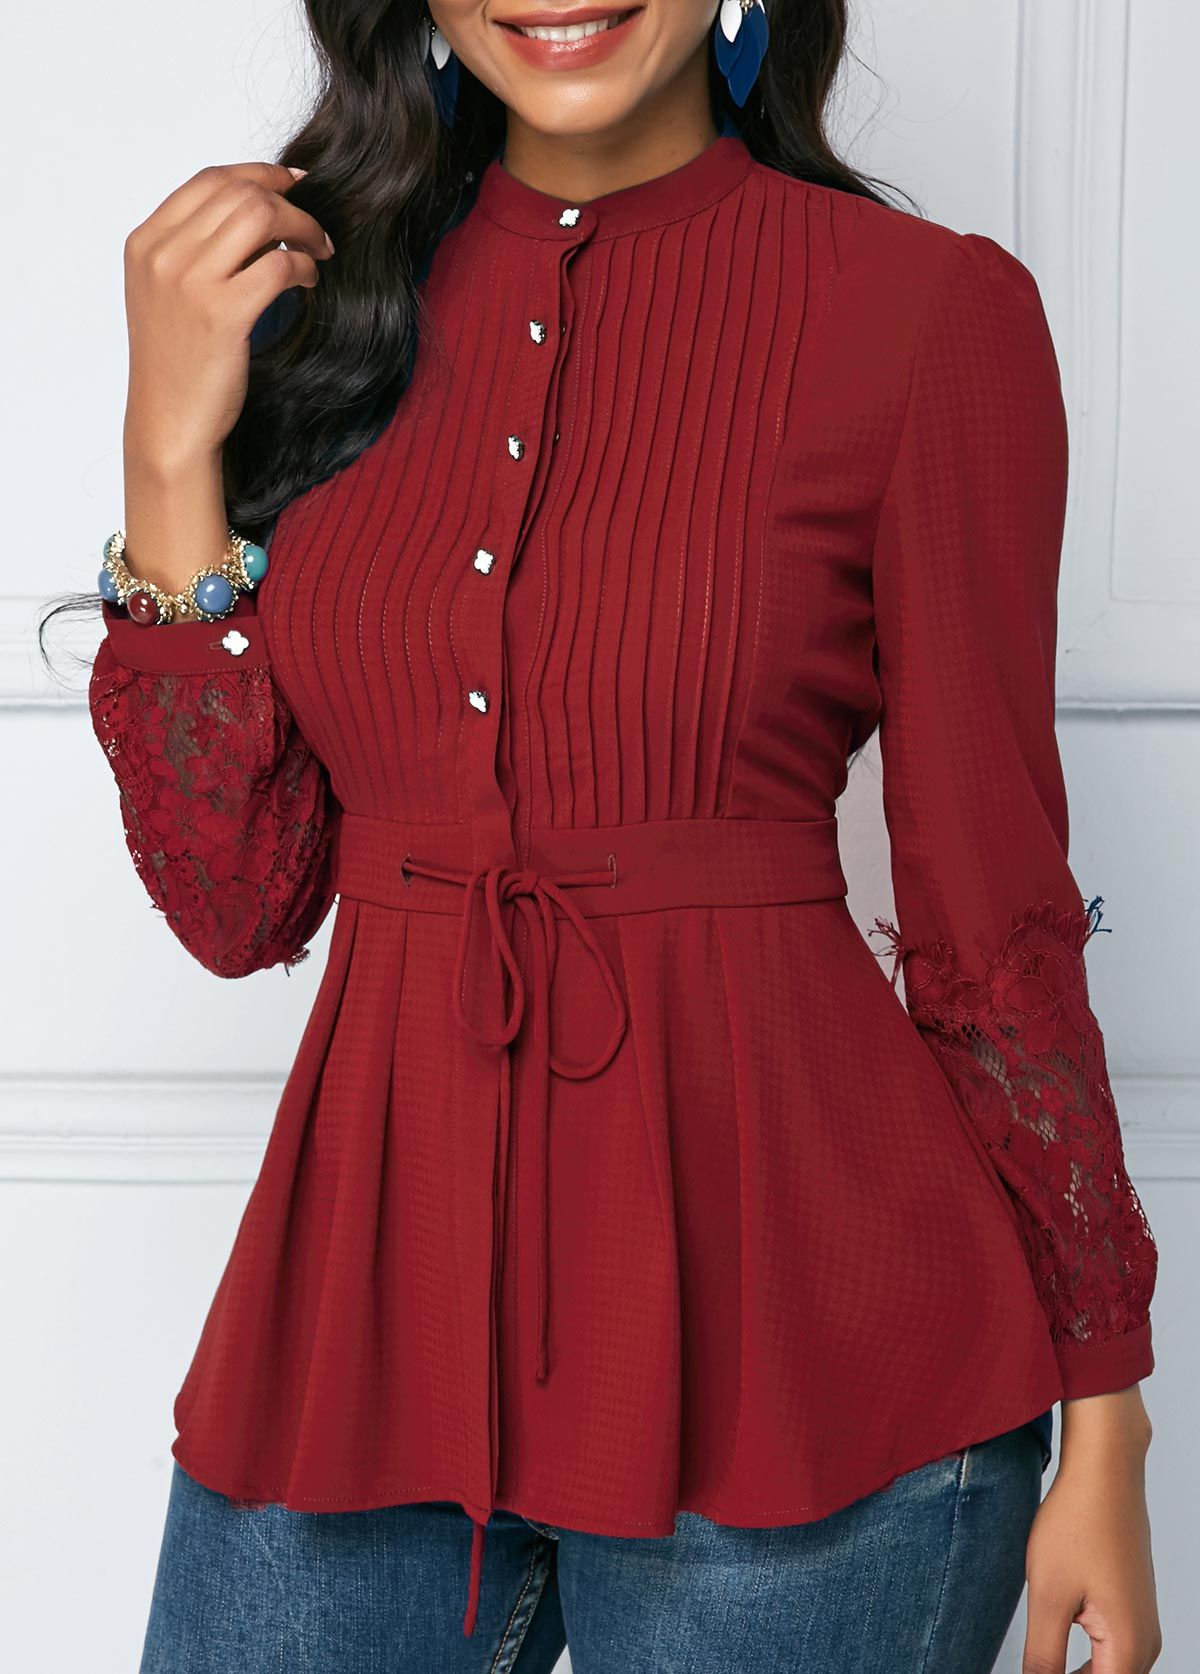 Lace Panel Wine Red Crinkle Chest Peplum Blouse Rosewe Com Usd 28 30 Peplum Blouse Blouse Designs Red Blouses